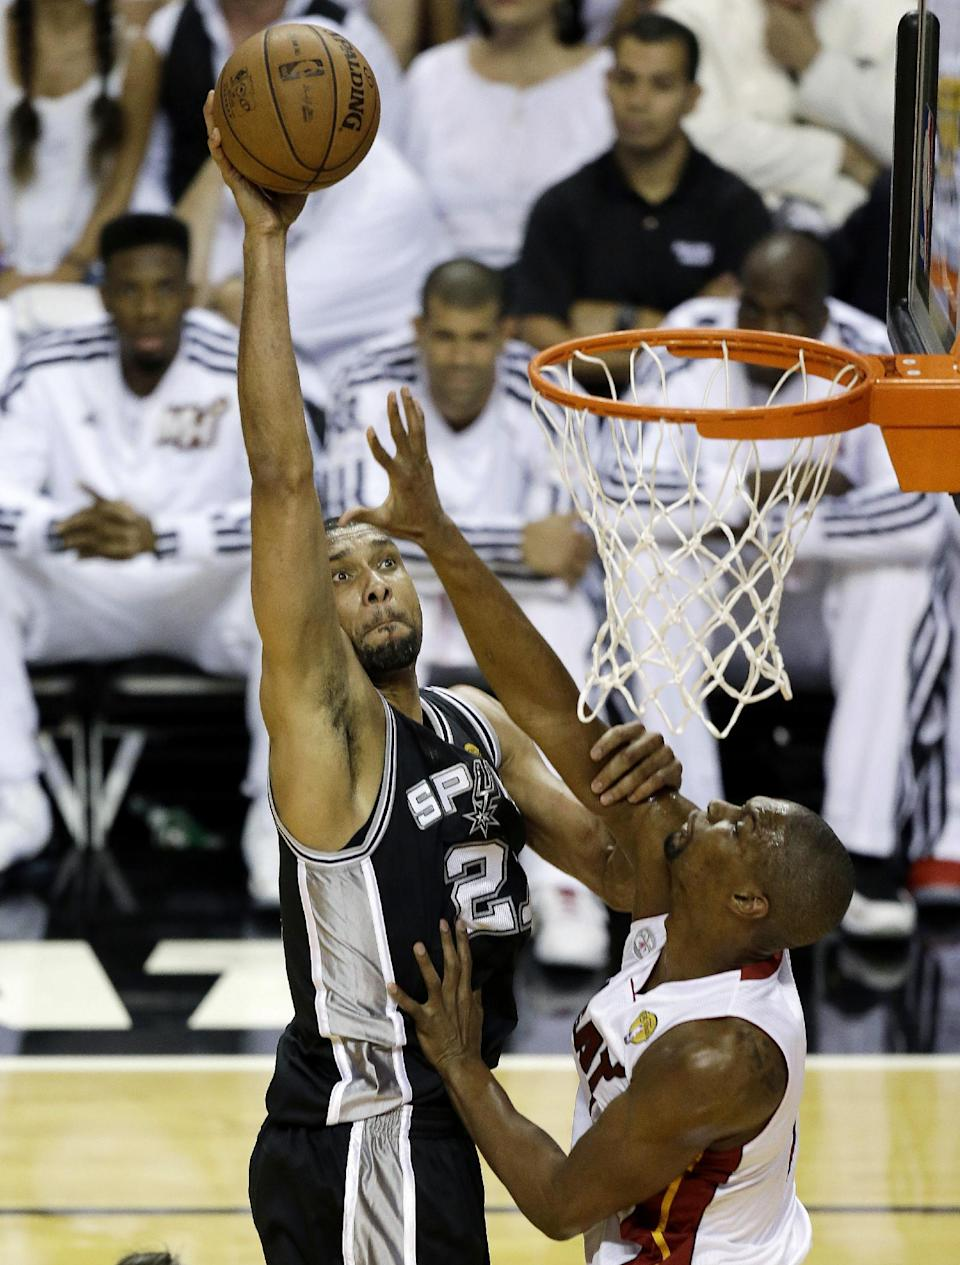 San Antonio Spurs forward Tim Duncan (21) shoots against Miami Heat center Chris Bosh (1) during the first half of Game 6 in their NBA Finals basketball series, Tuesday, June 18, 2013 in Miami. (AP Photo/Wilfredo Lee)